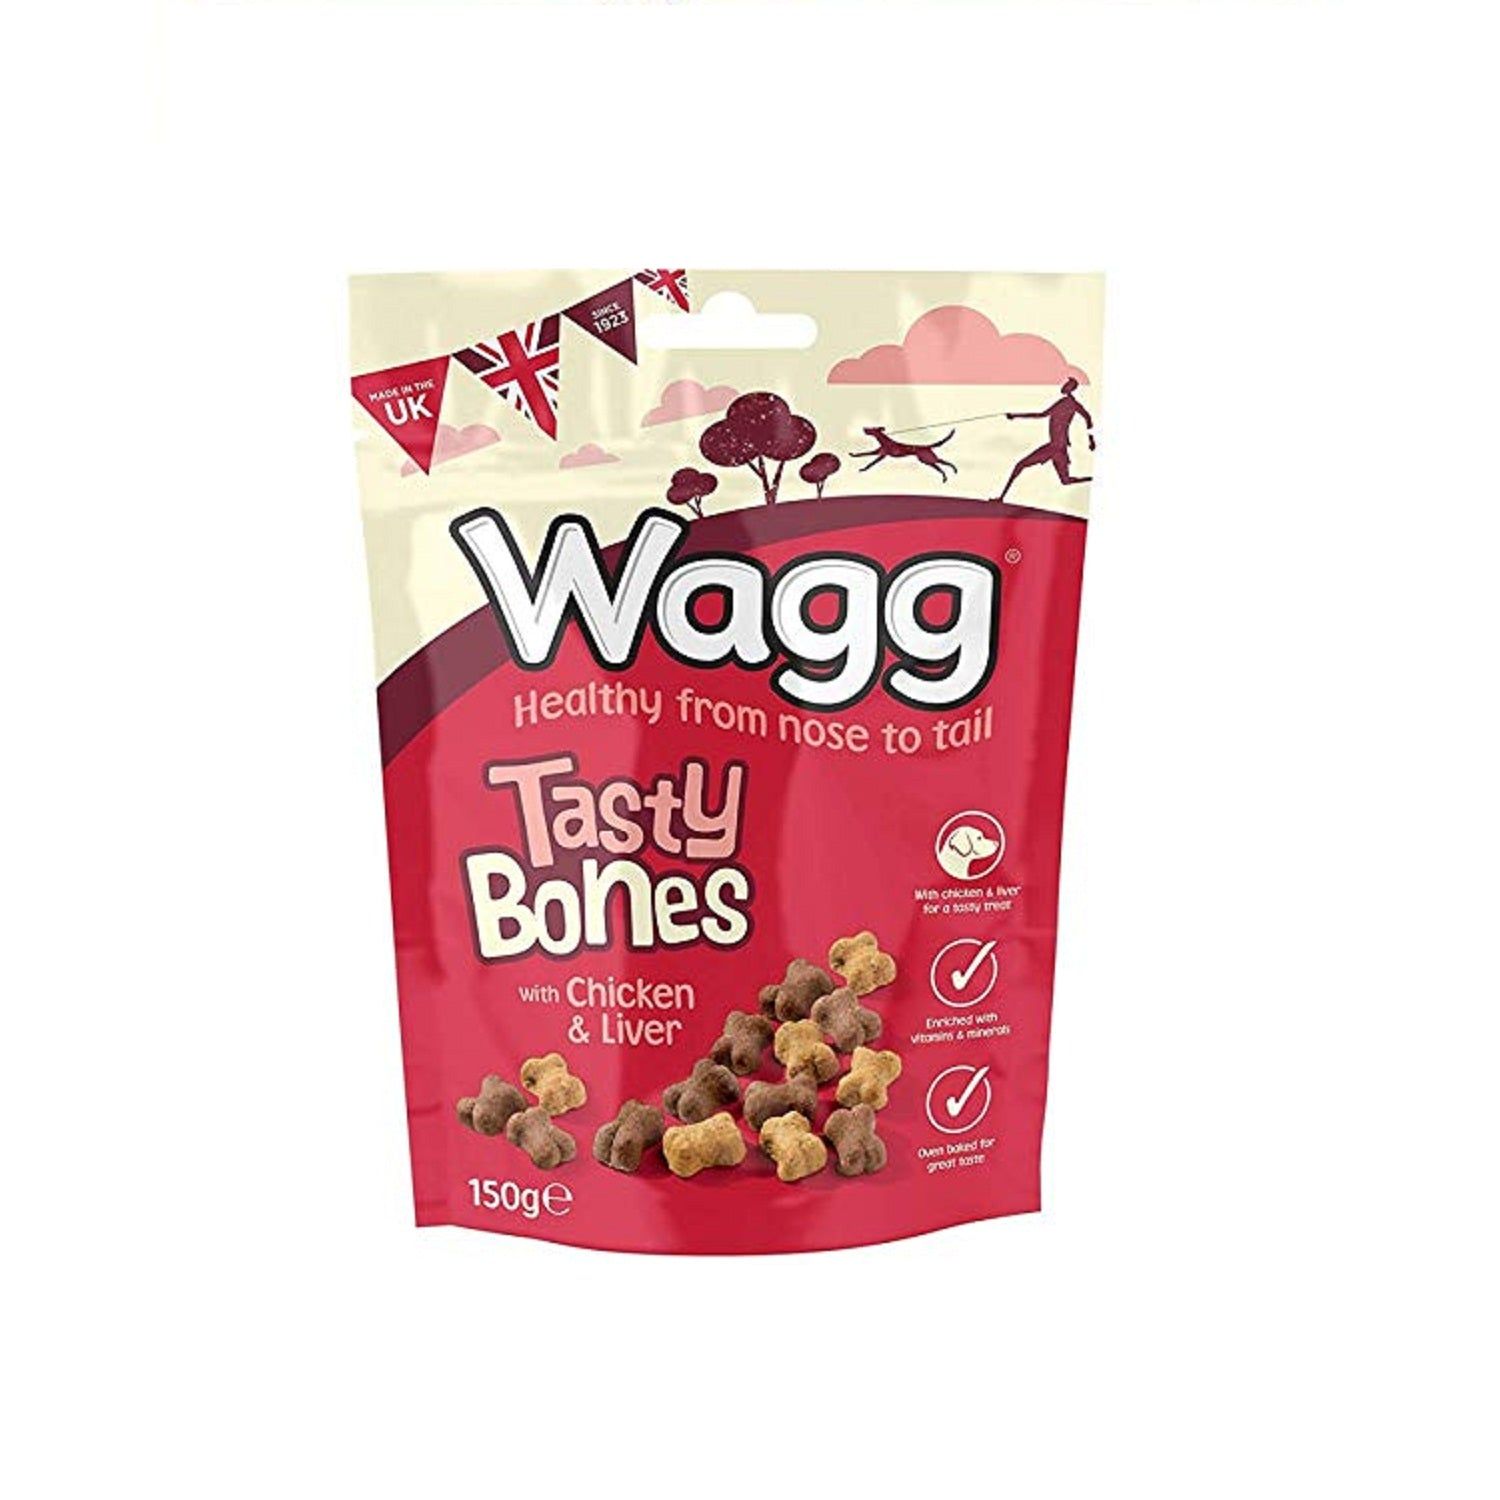 Wagg Chicken & Liver Tasty Bones Dog Treats 150 g - pet-club-india